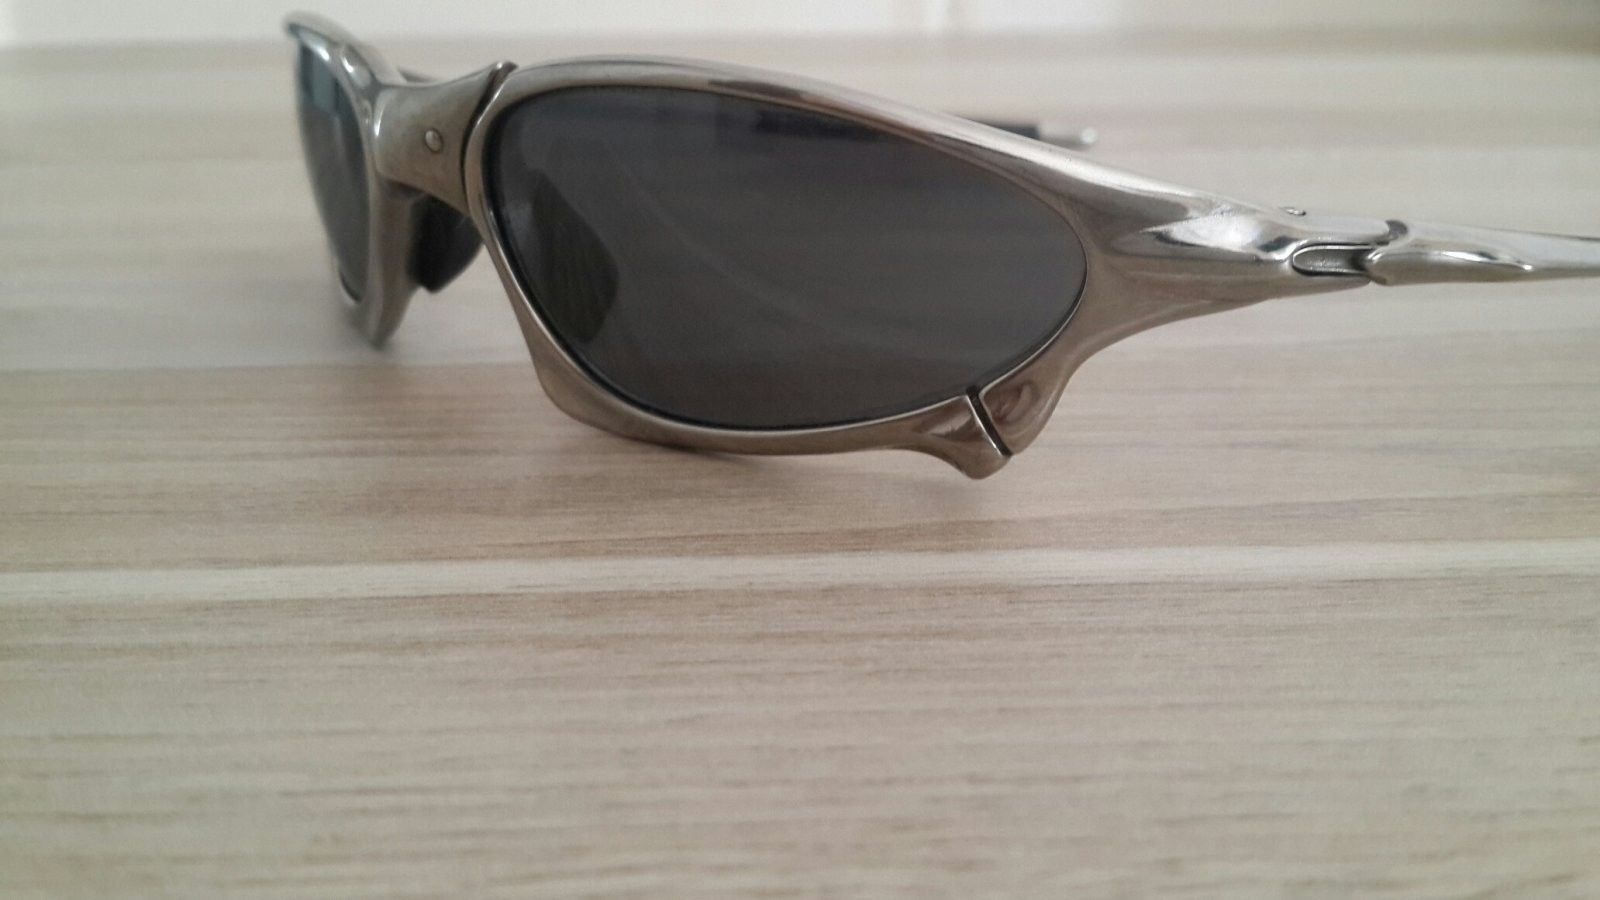 Oakley Penny Polished No Serial Number - 20141015_121832_resized.jpg